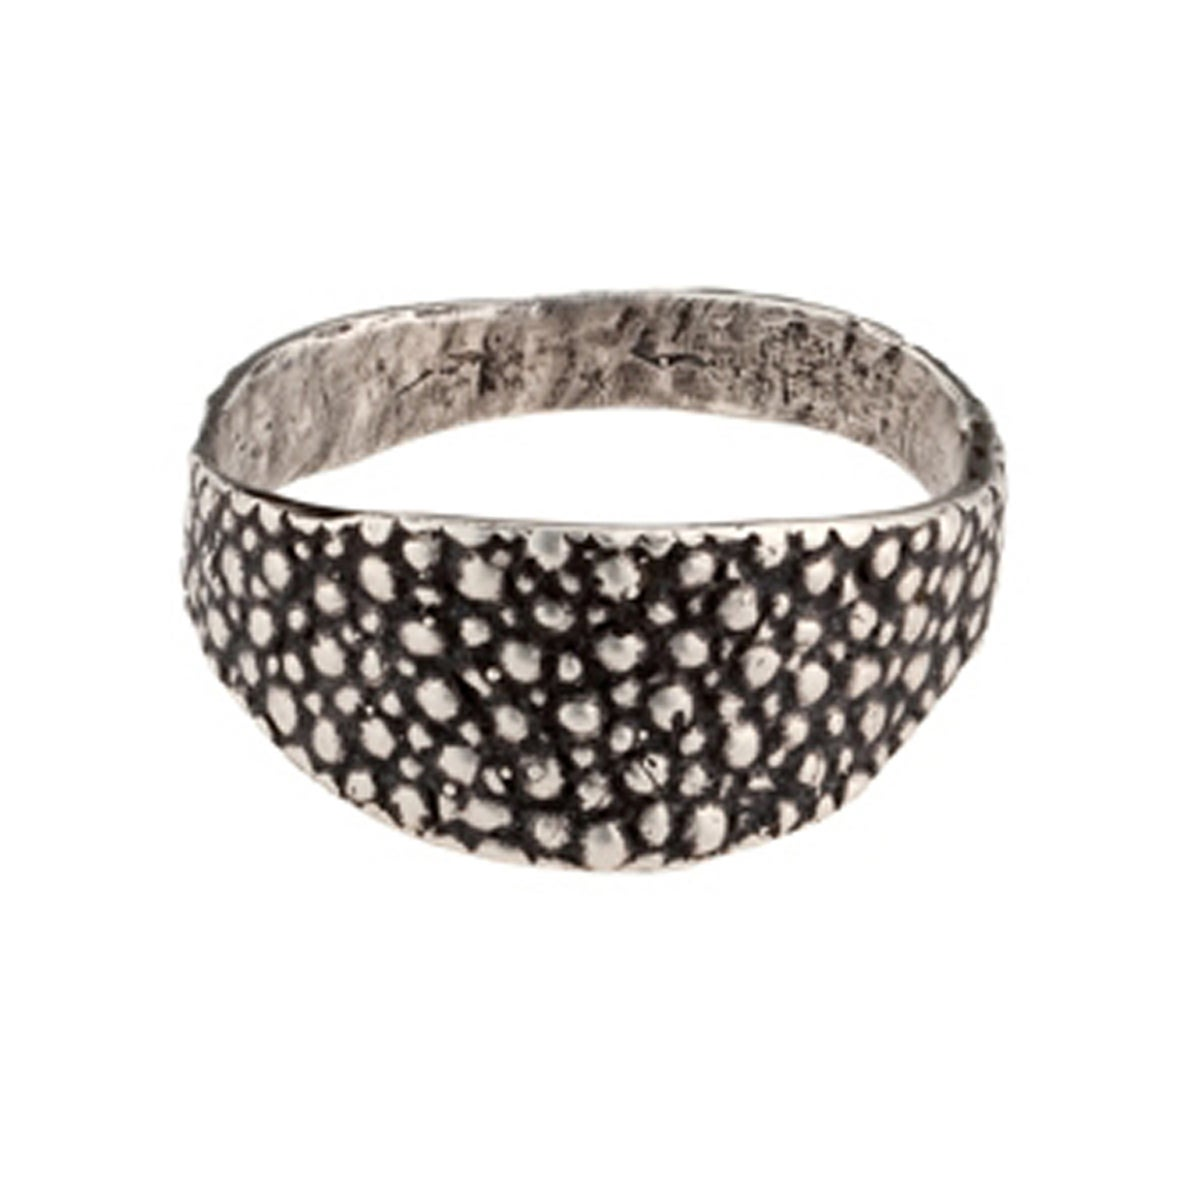 Image of Lauren Wolf Silver Stingray Signet Ring